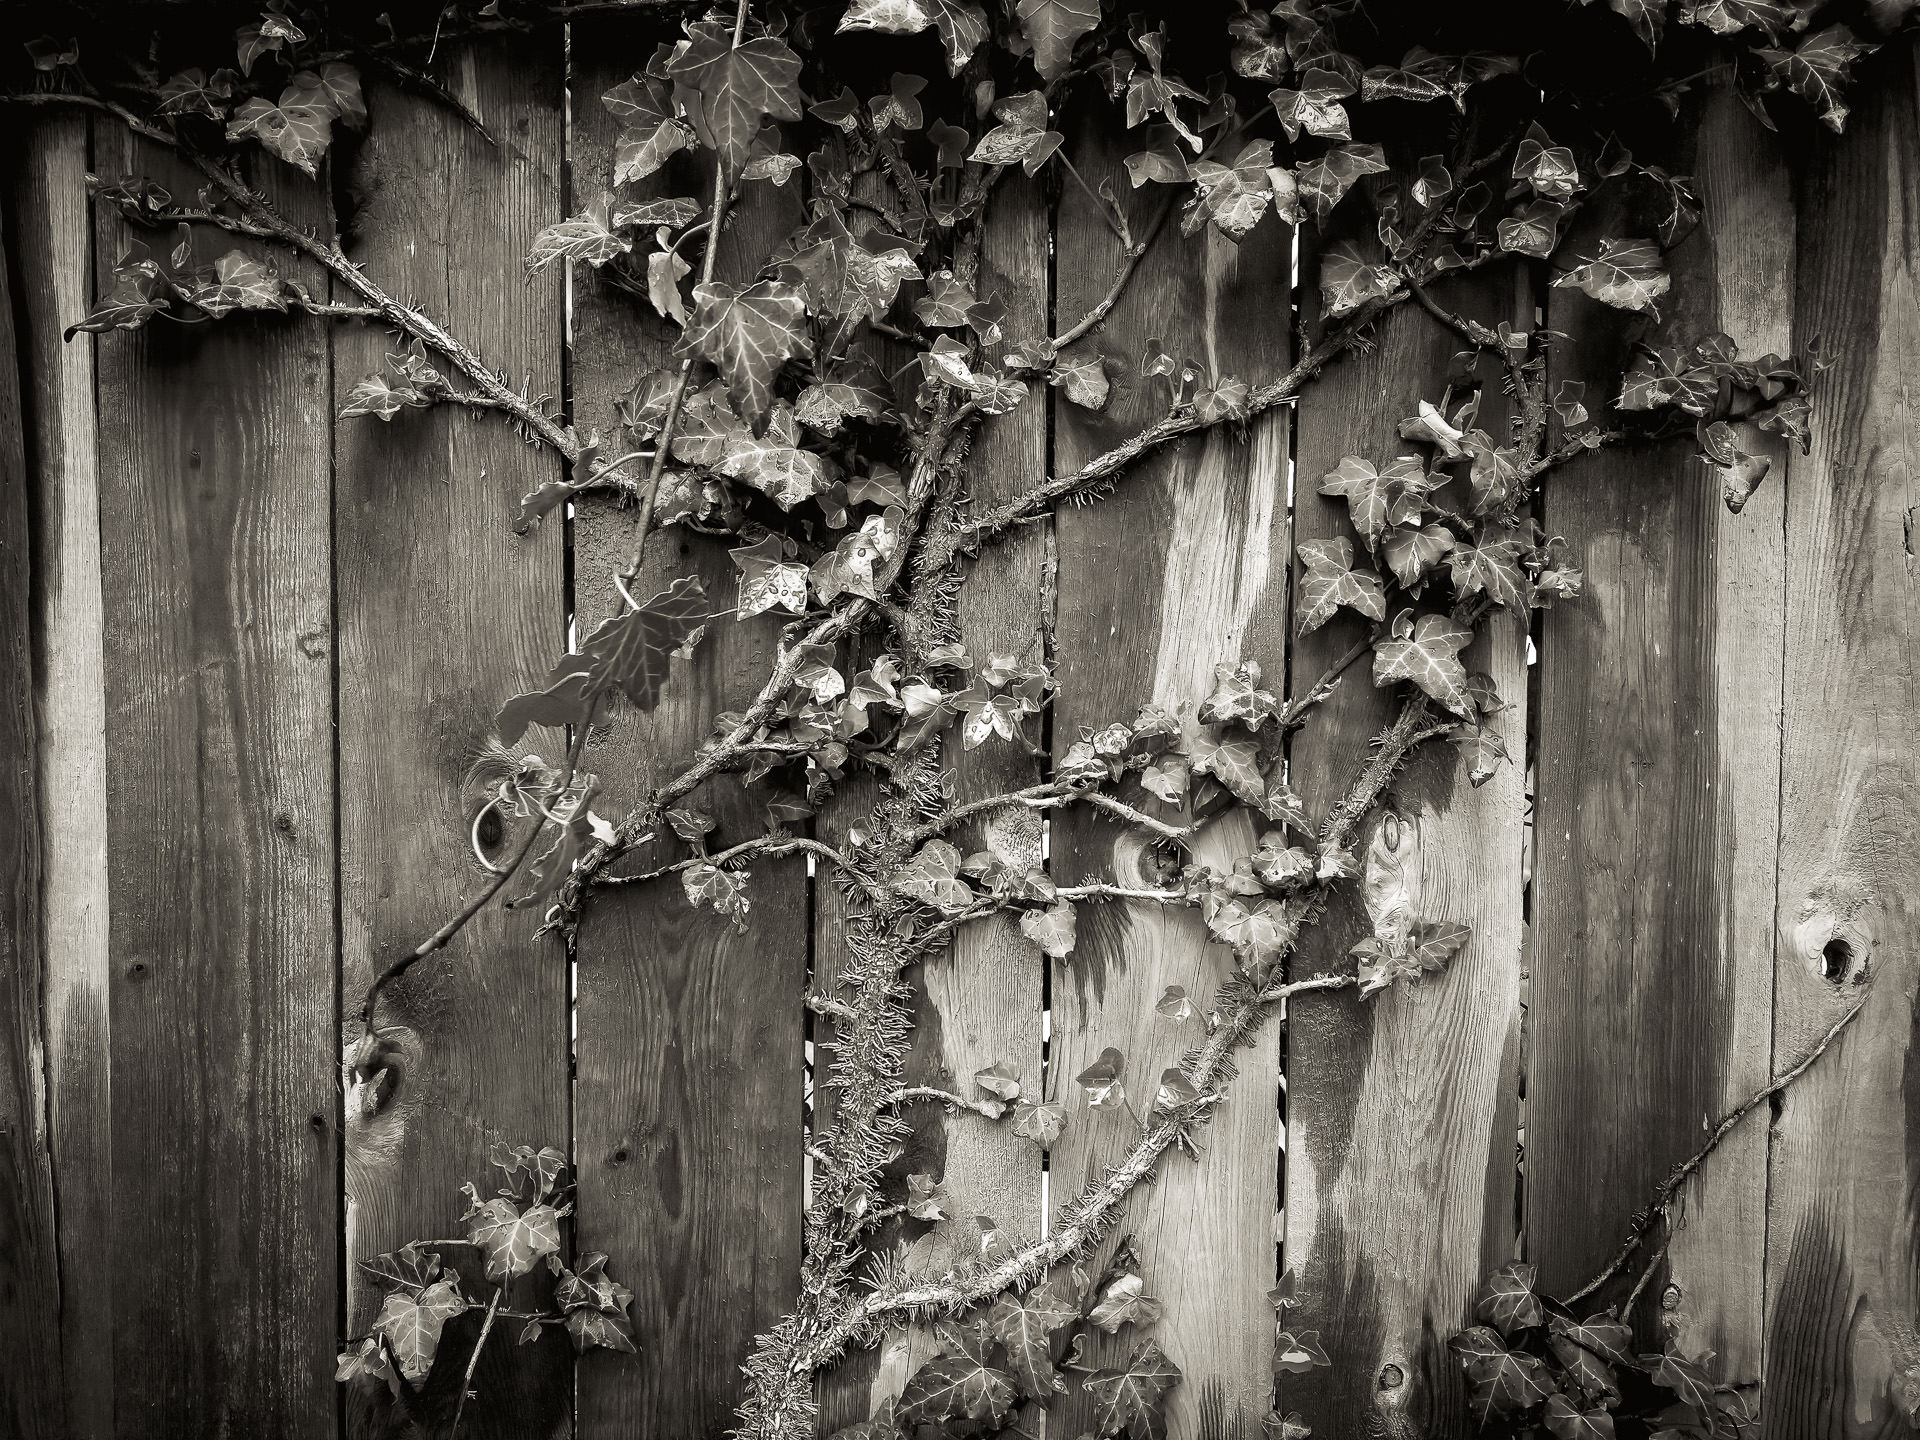 A creeper on my fence…